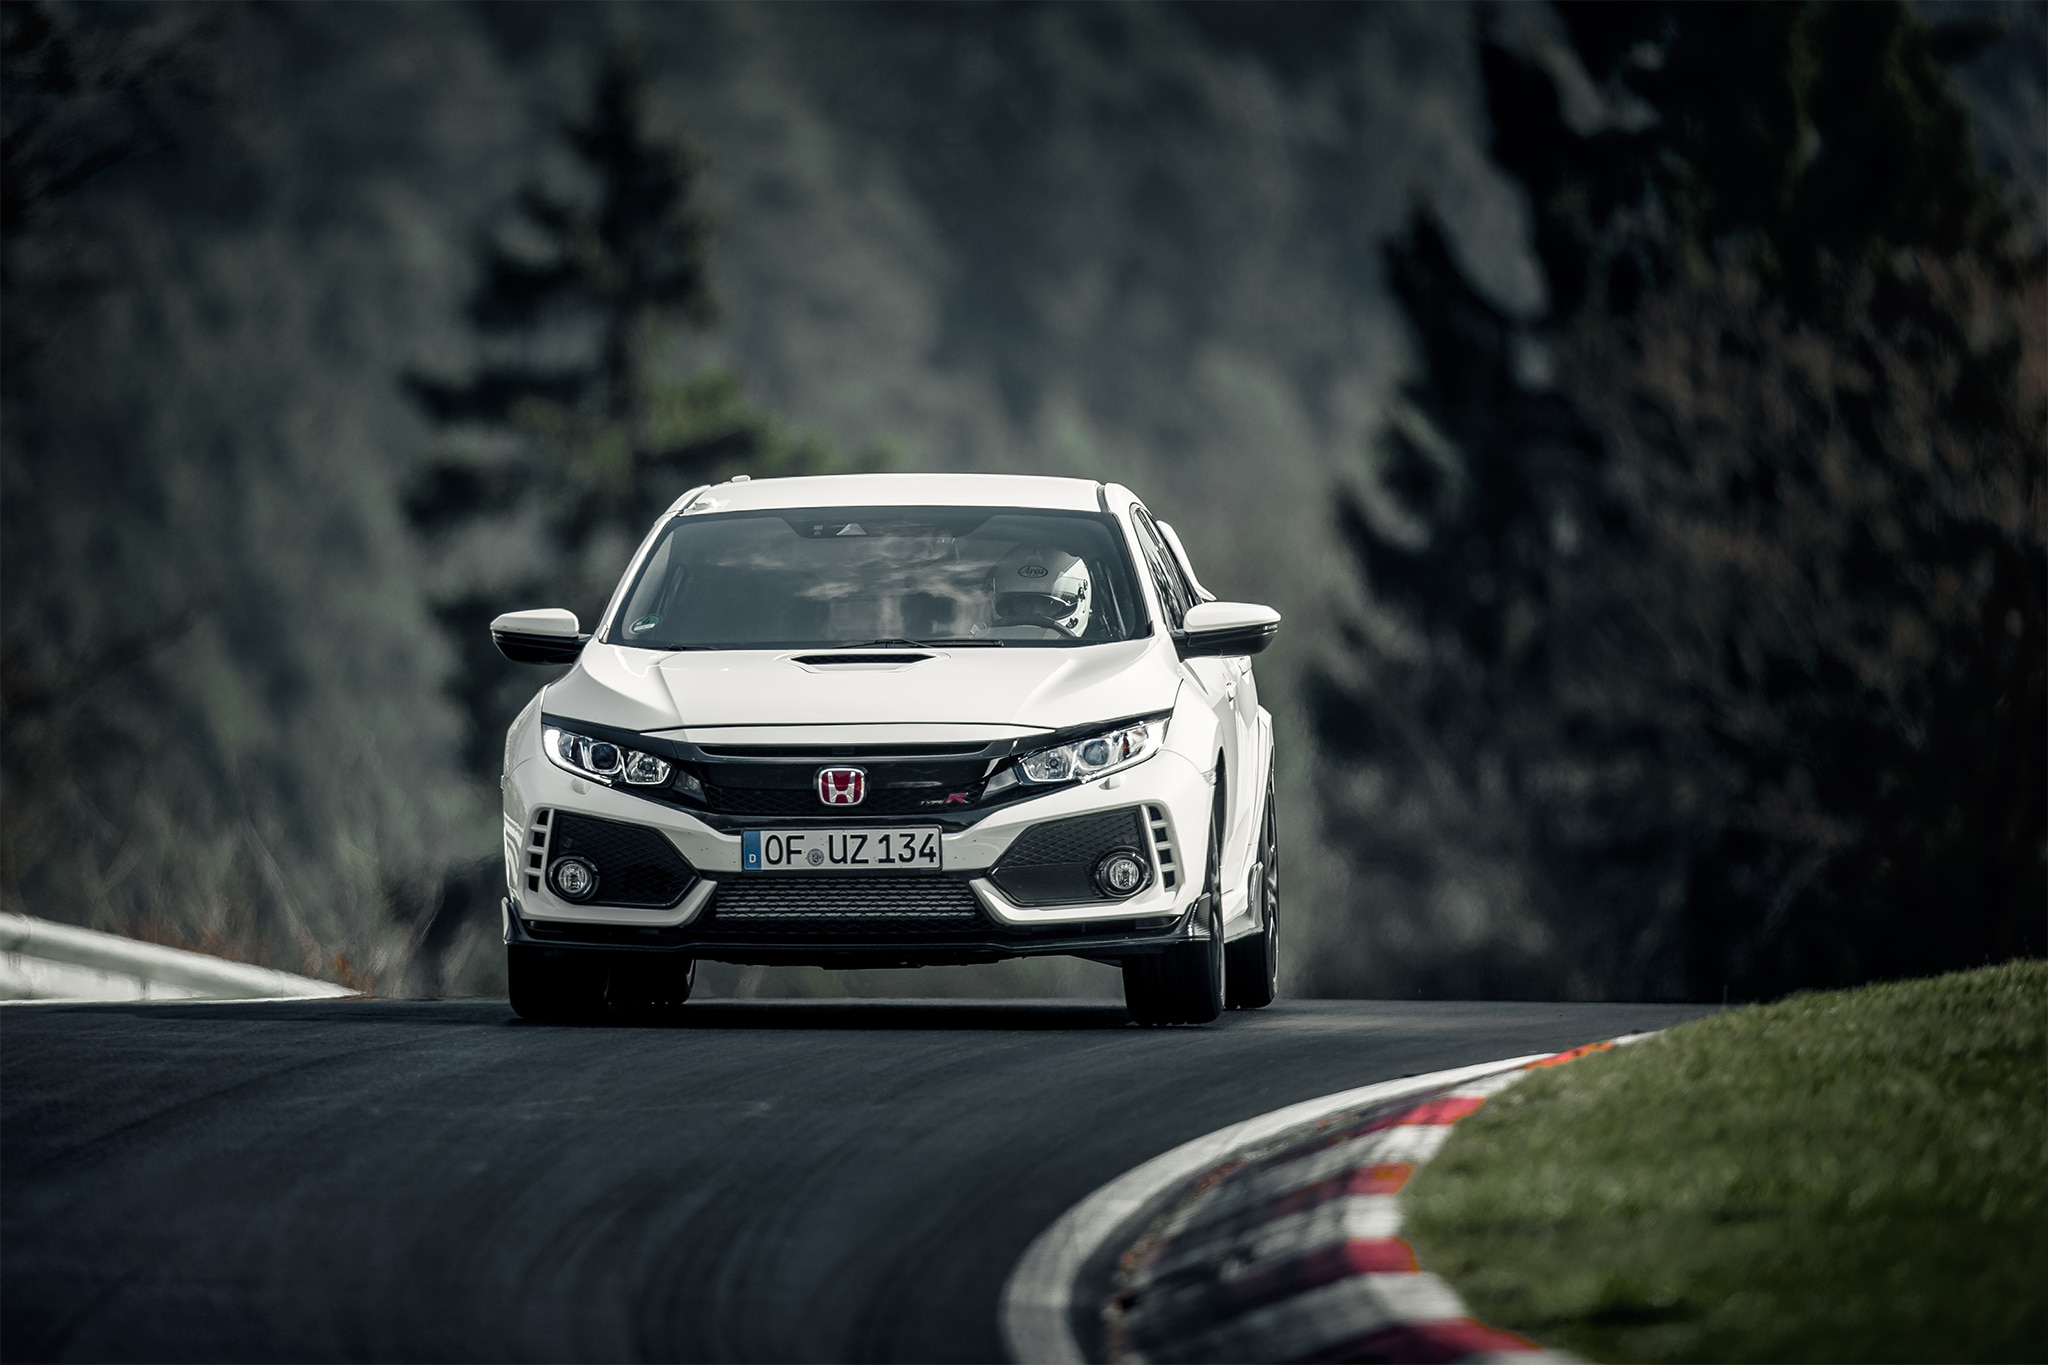 2017 Honda Civic Type R Front View In Motion 02